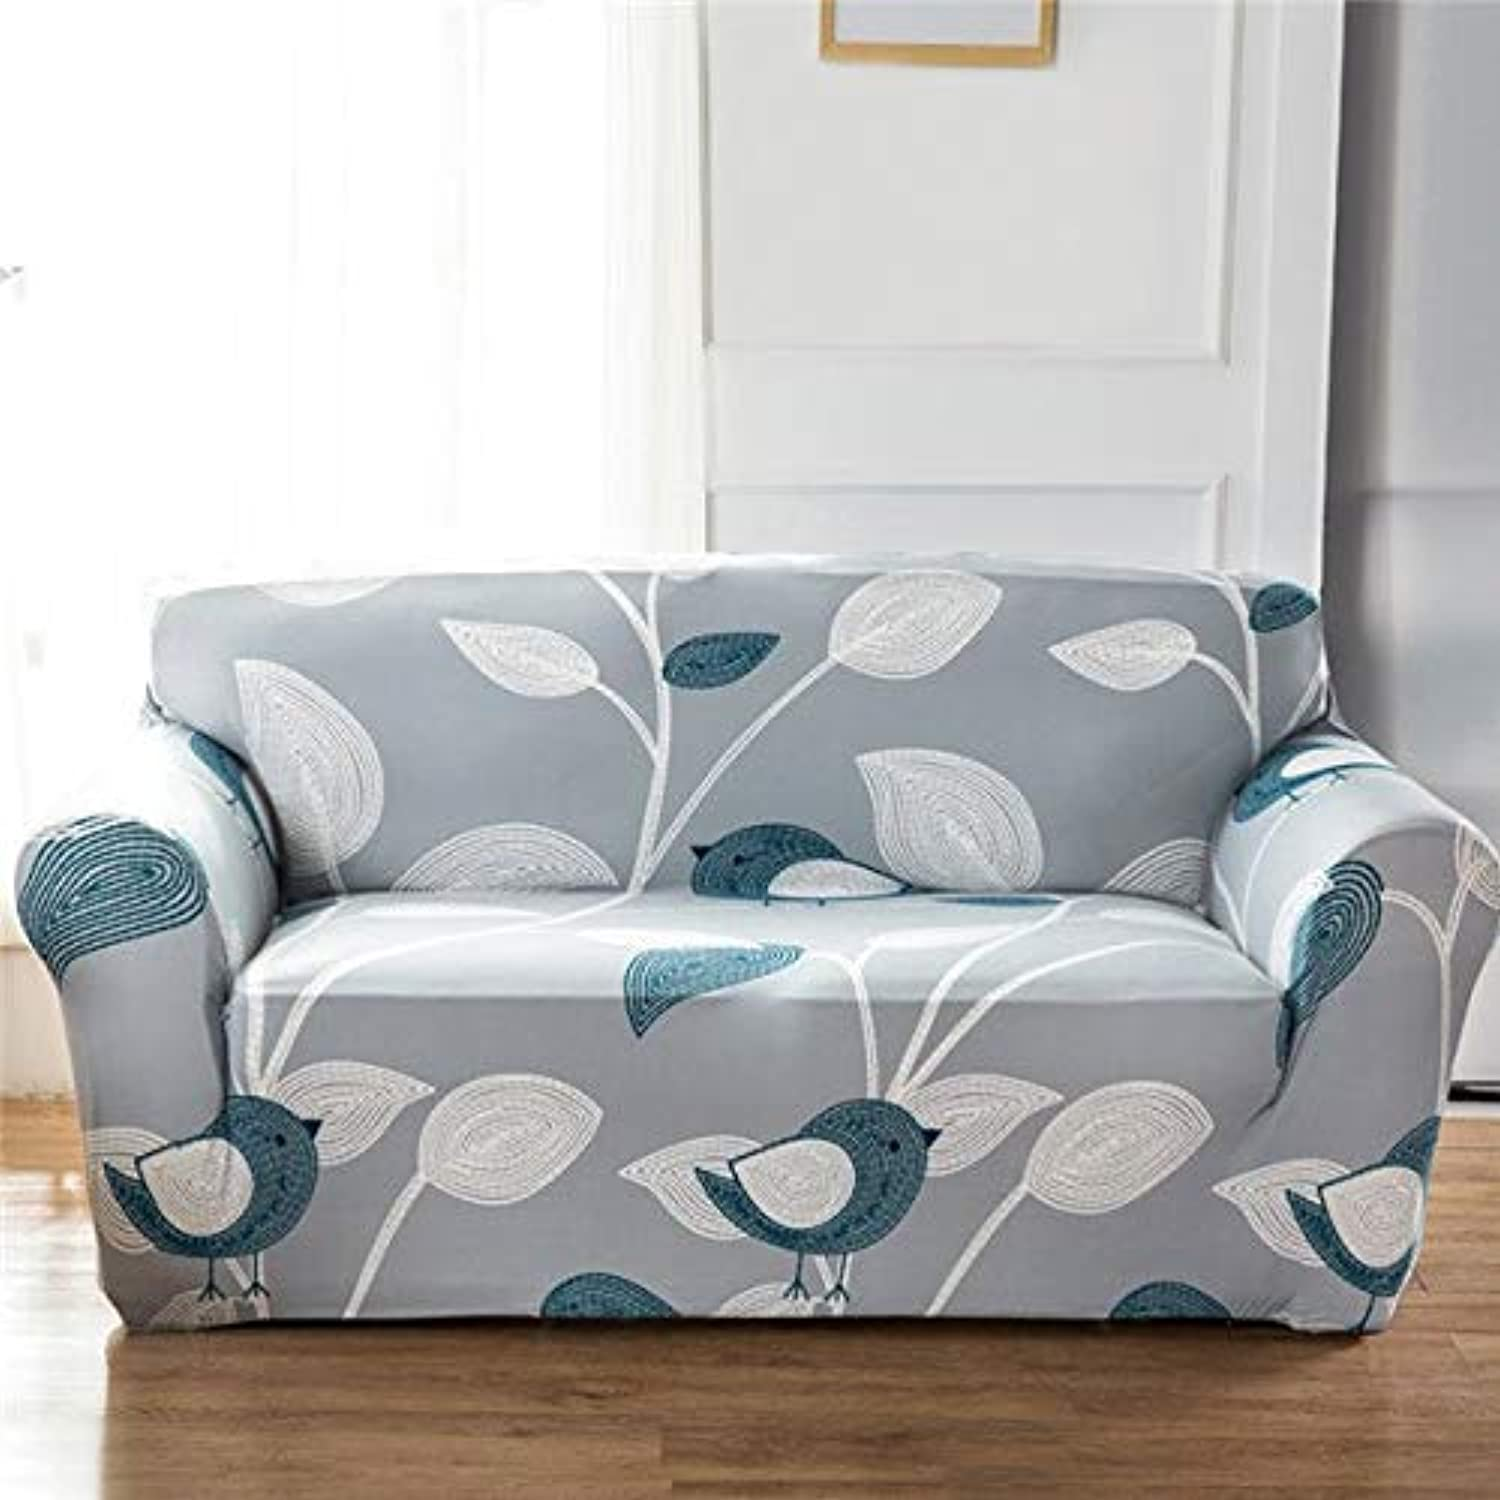 Farmerly Couch Cover Predector Furniture Sofa Wrap Tight Slipcovers All-Inclusive Sofa Cover Elastic Anti-Slip Sofa Towel for Living Room   2, 1.seat 90-140CM